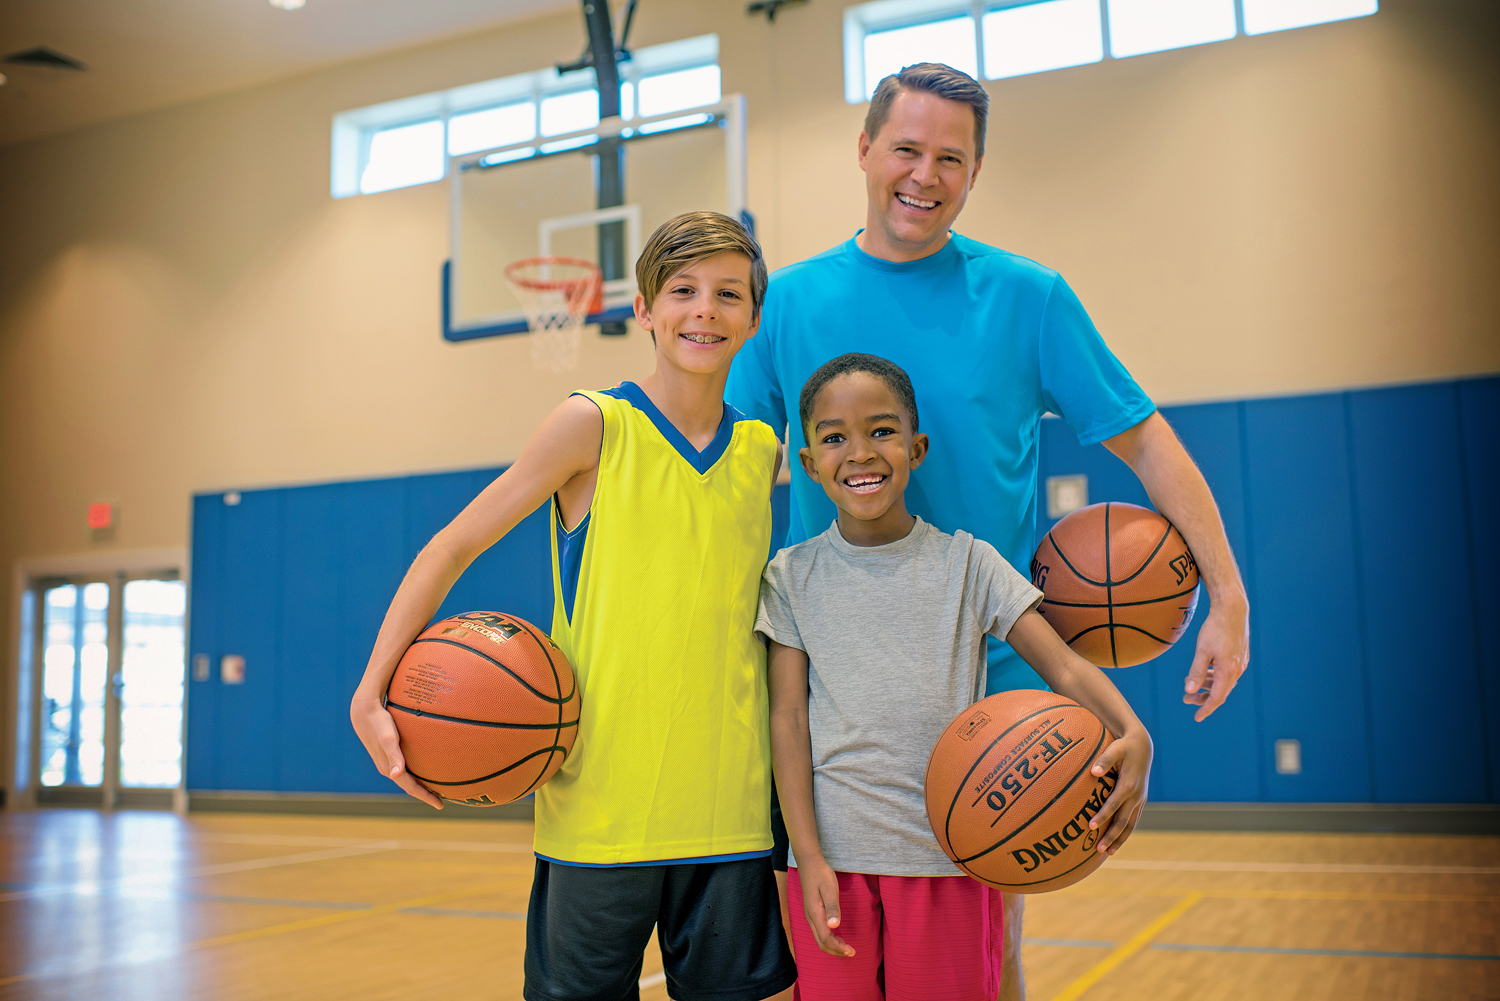 A man and two boys with basketballs smiling and posing for camera.